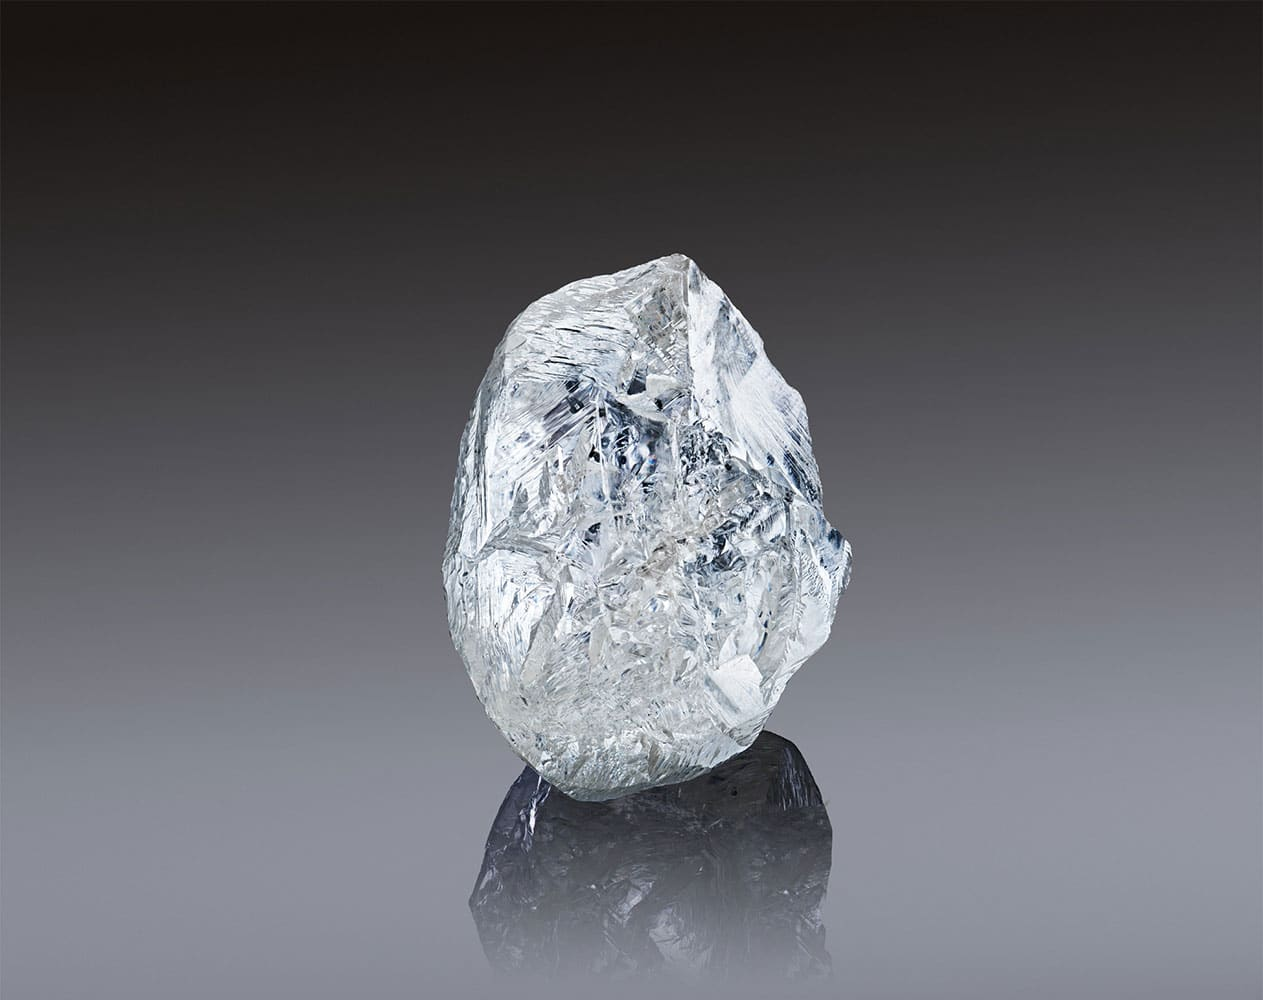 An exceptional 242-carat diamond offered on sale at ALROSA Jubilee Auction #100 in Dubai